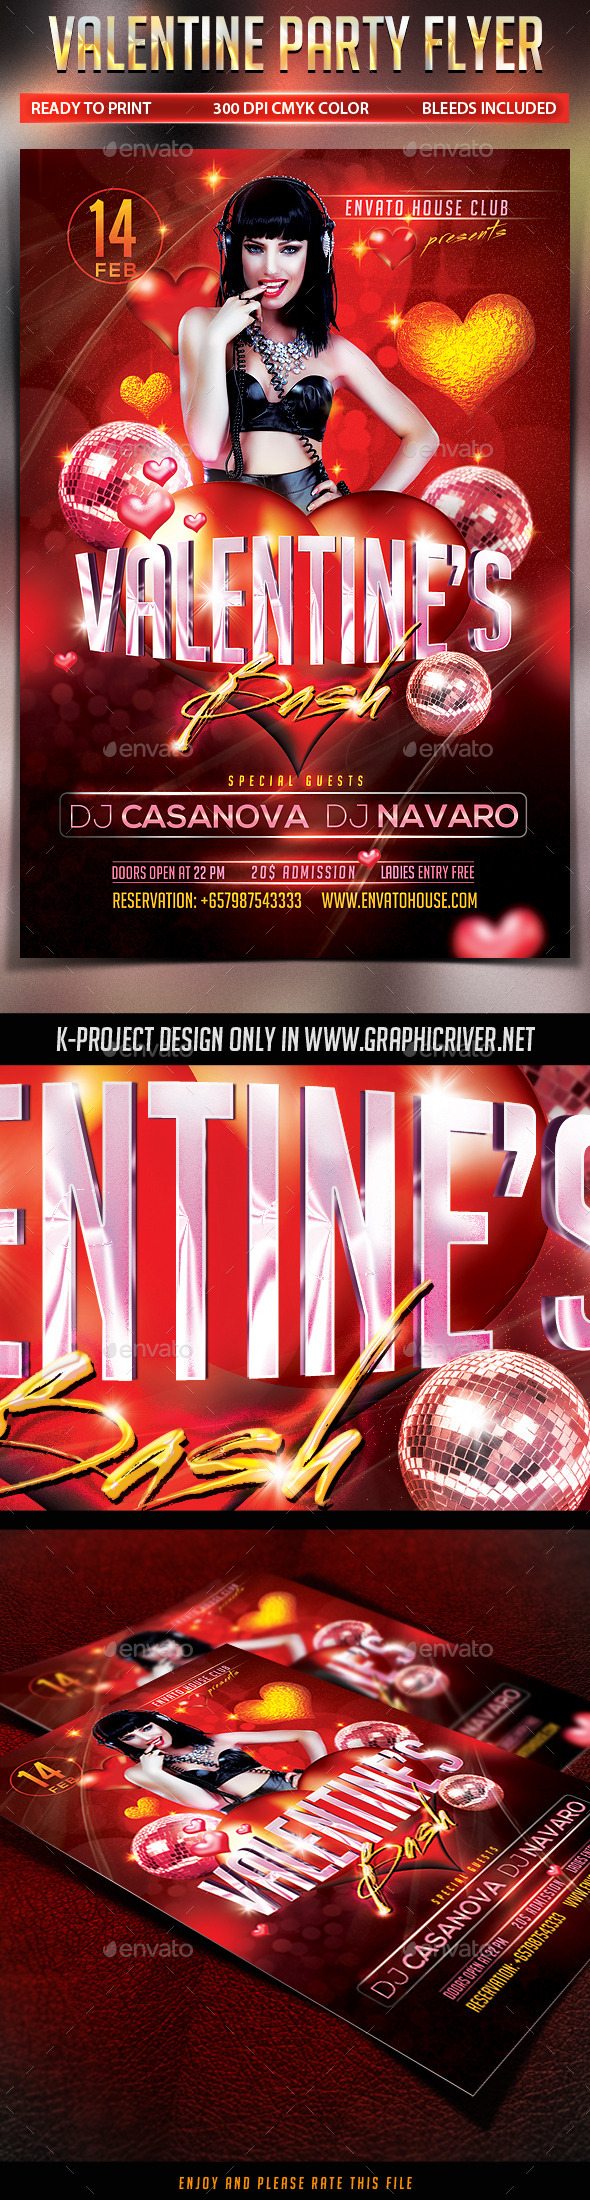 GraphicRiver Valentine Party Flyer 10050369